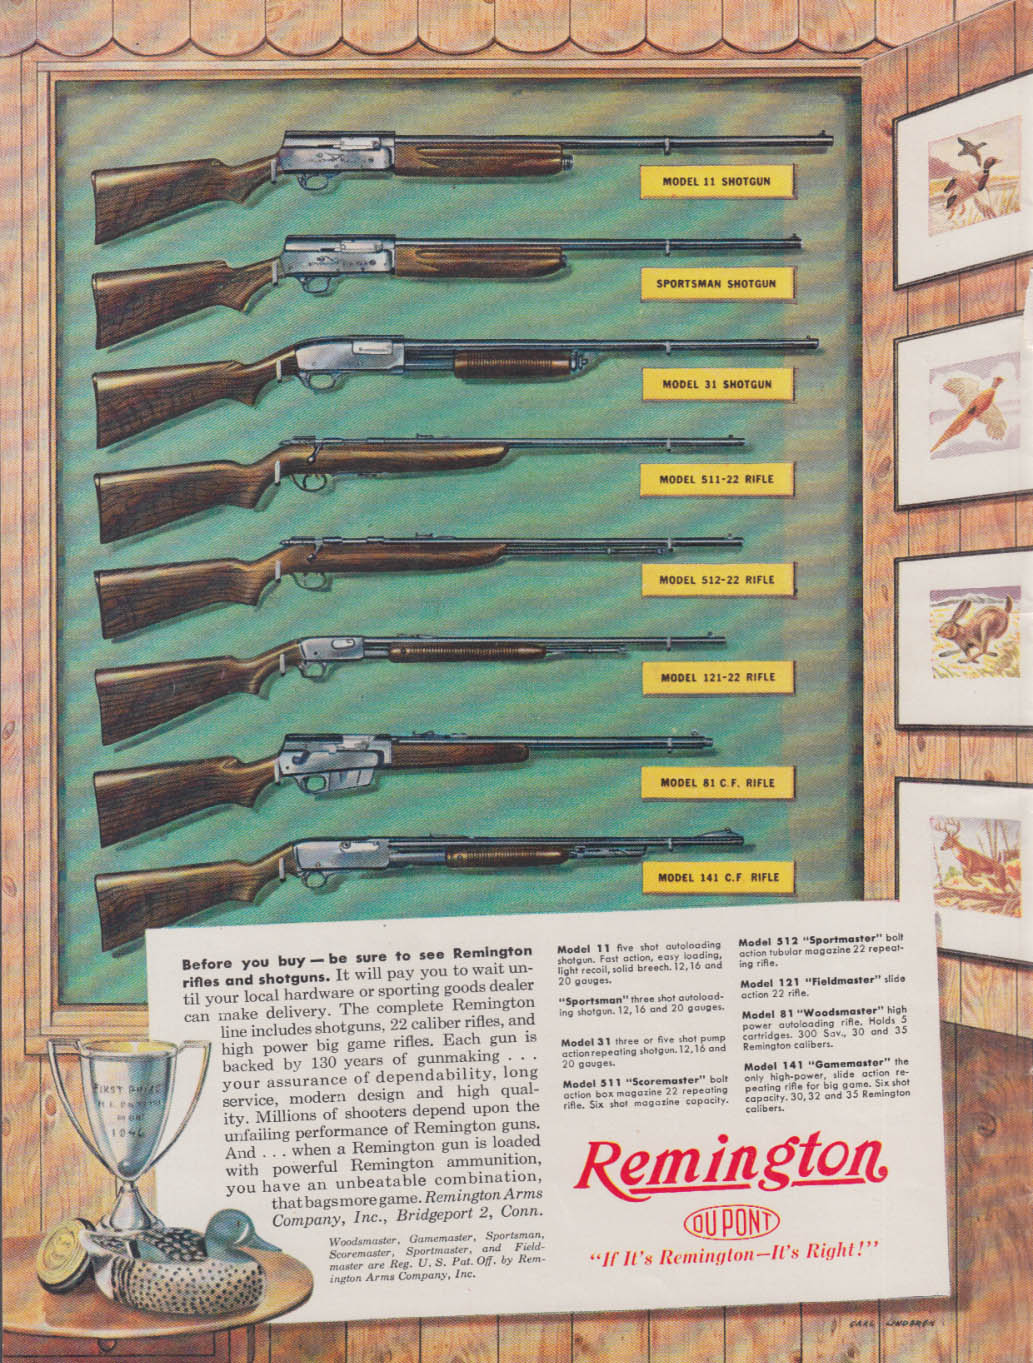 Before you buy be sure to see Remington Rifles & Shotguns ad 1947